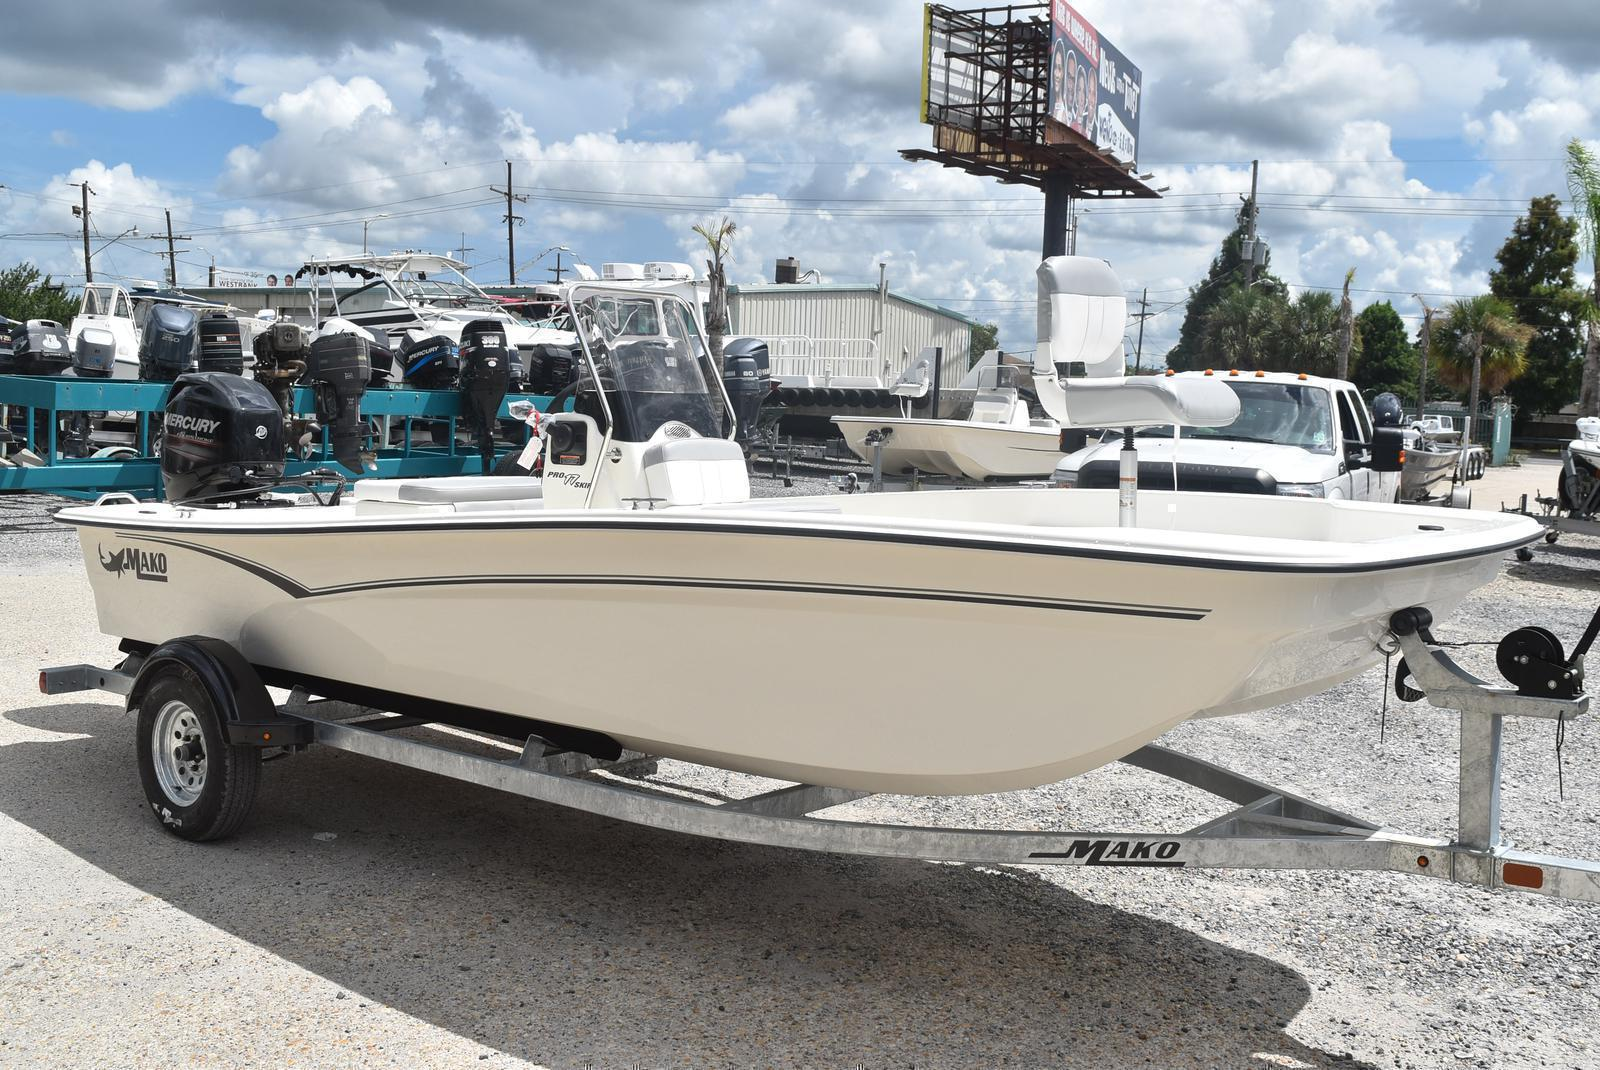 2020 Mako boat for sale, model of the boat is Pro Skiff 17, 75 ELPT & Image # 661 of 702